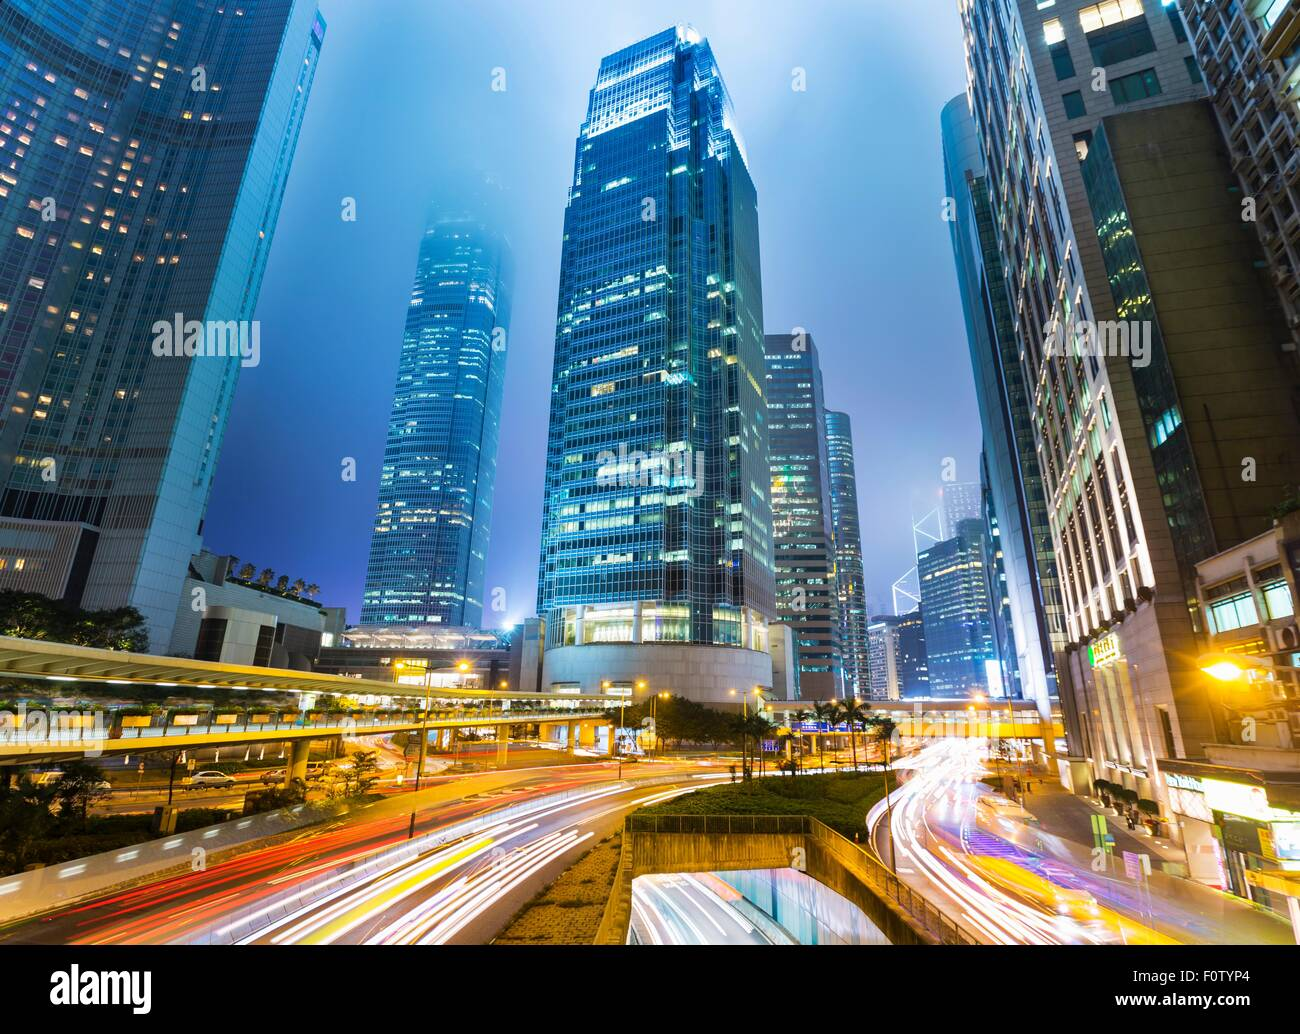 Central Hong Kong skyline with IFC building, Hong Kong, China - Stock Image